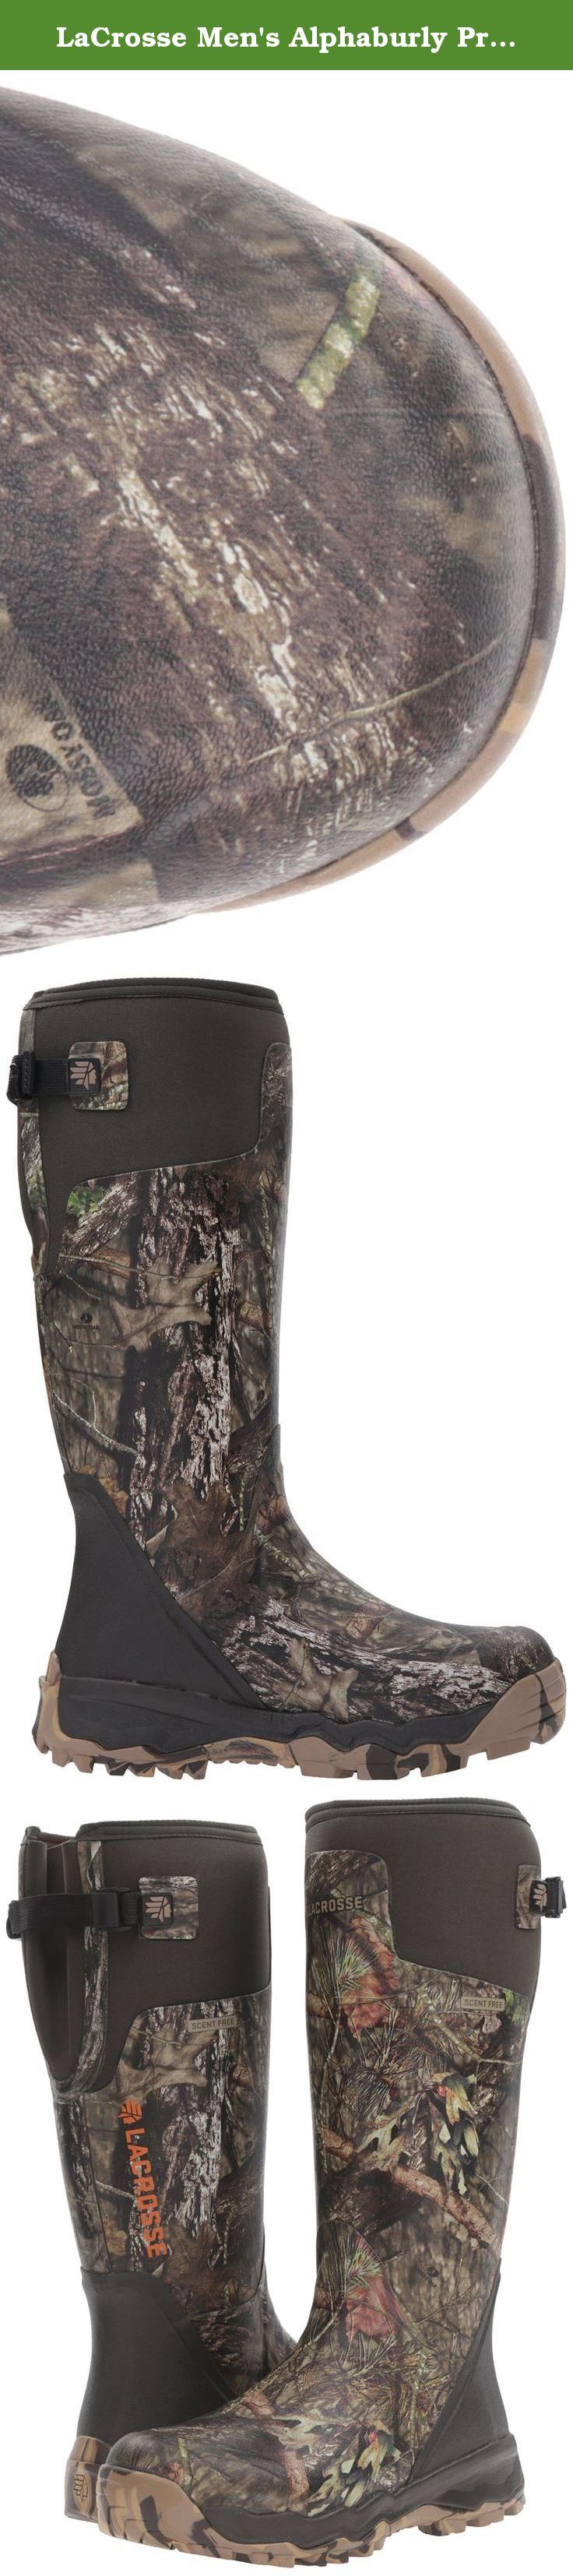 """LaCrosse Men's Alphaburly Pro 18"""" Hunting Shoes, Mossy Oak Break up Country, 11 M US. Built from a proud tradition of innovation, the alphaburly pro is our premium hunting boot. Combining high quality, scent-free rubber with naturally insulating neoprene, the alphaburly pro fears nothing. Not the cold. Not the harsh terrain. Not the challenges of a grueling hunt. It features a thick cushioning eva midsole for added comfort. An embossed liner for better air circulation. And an adjustable…"""